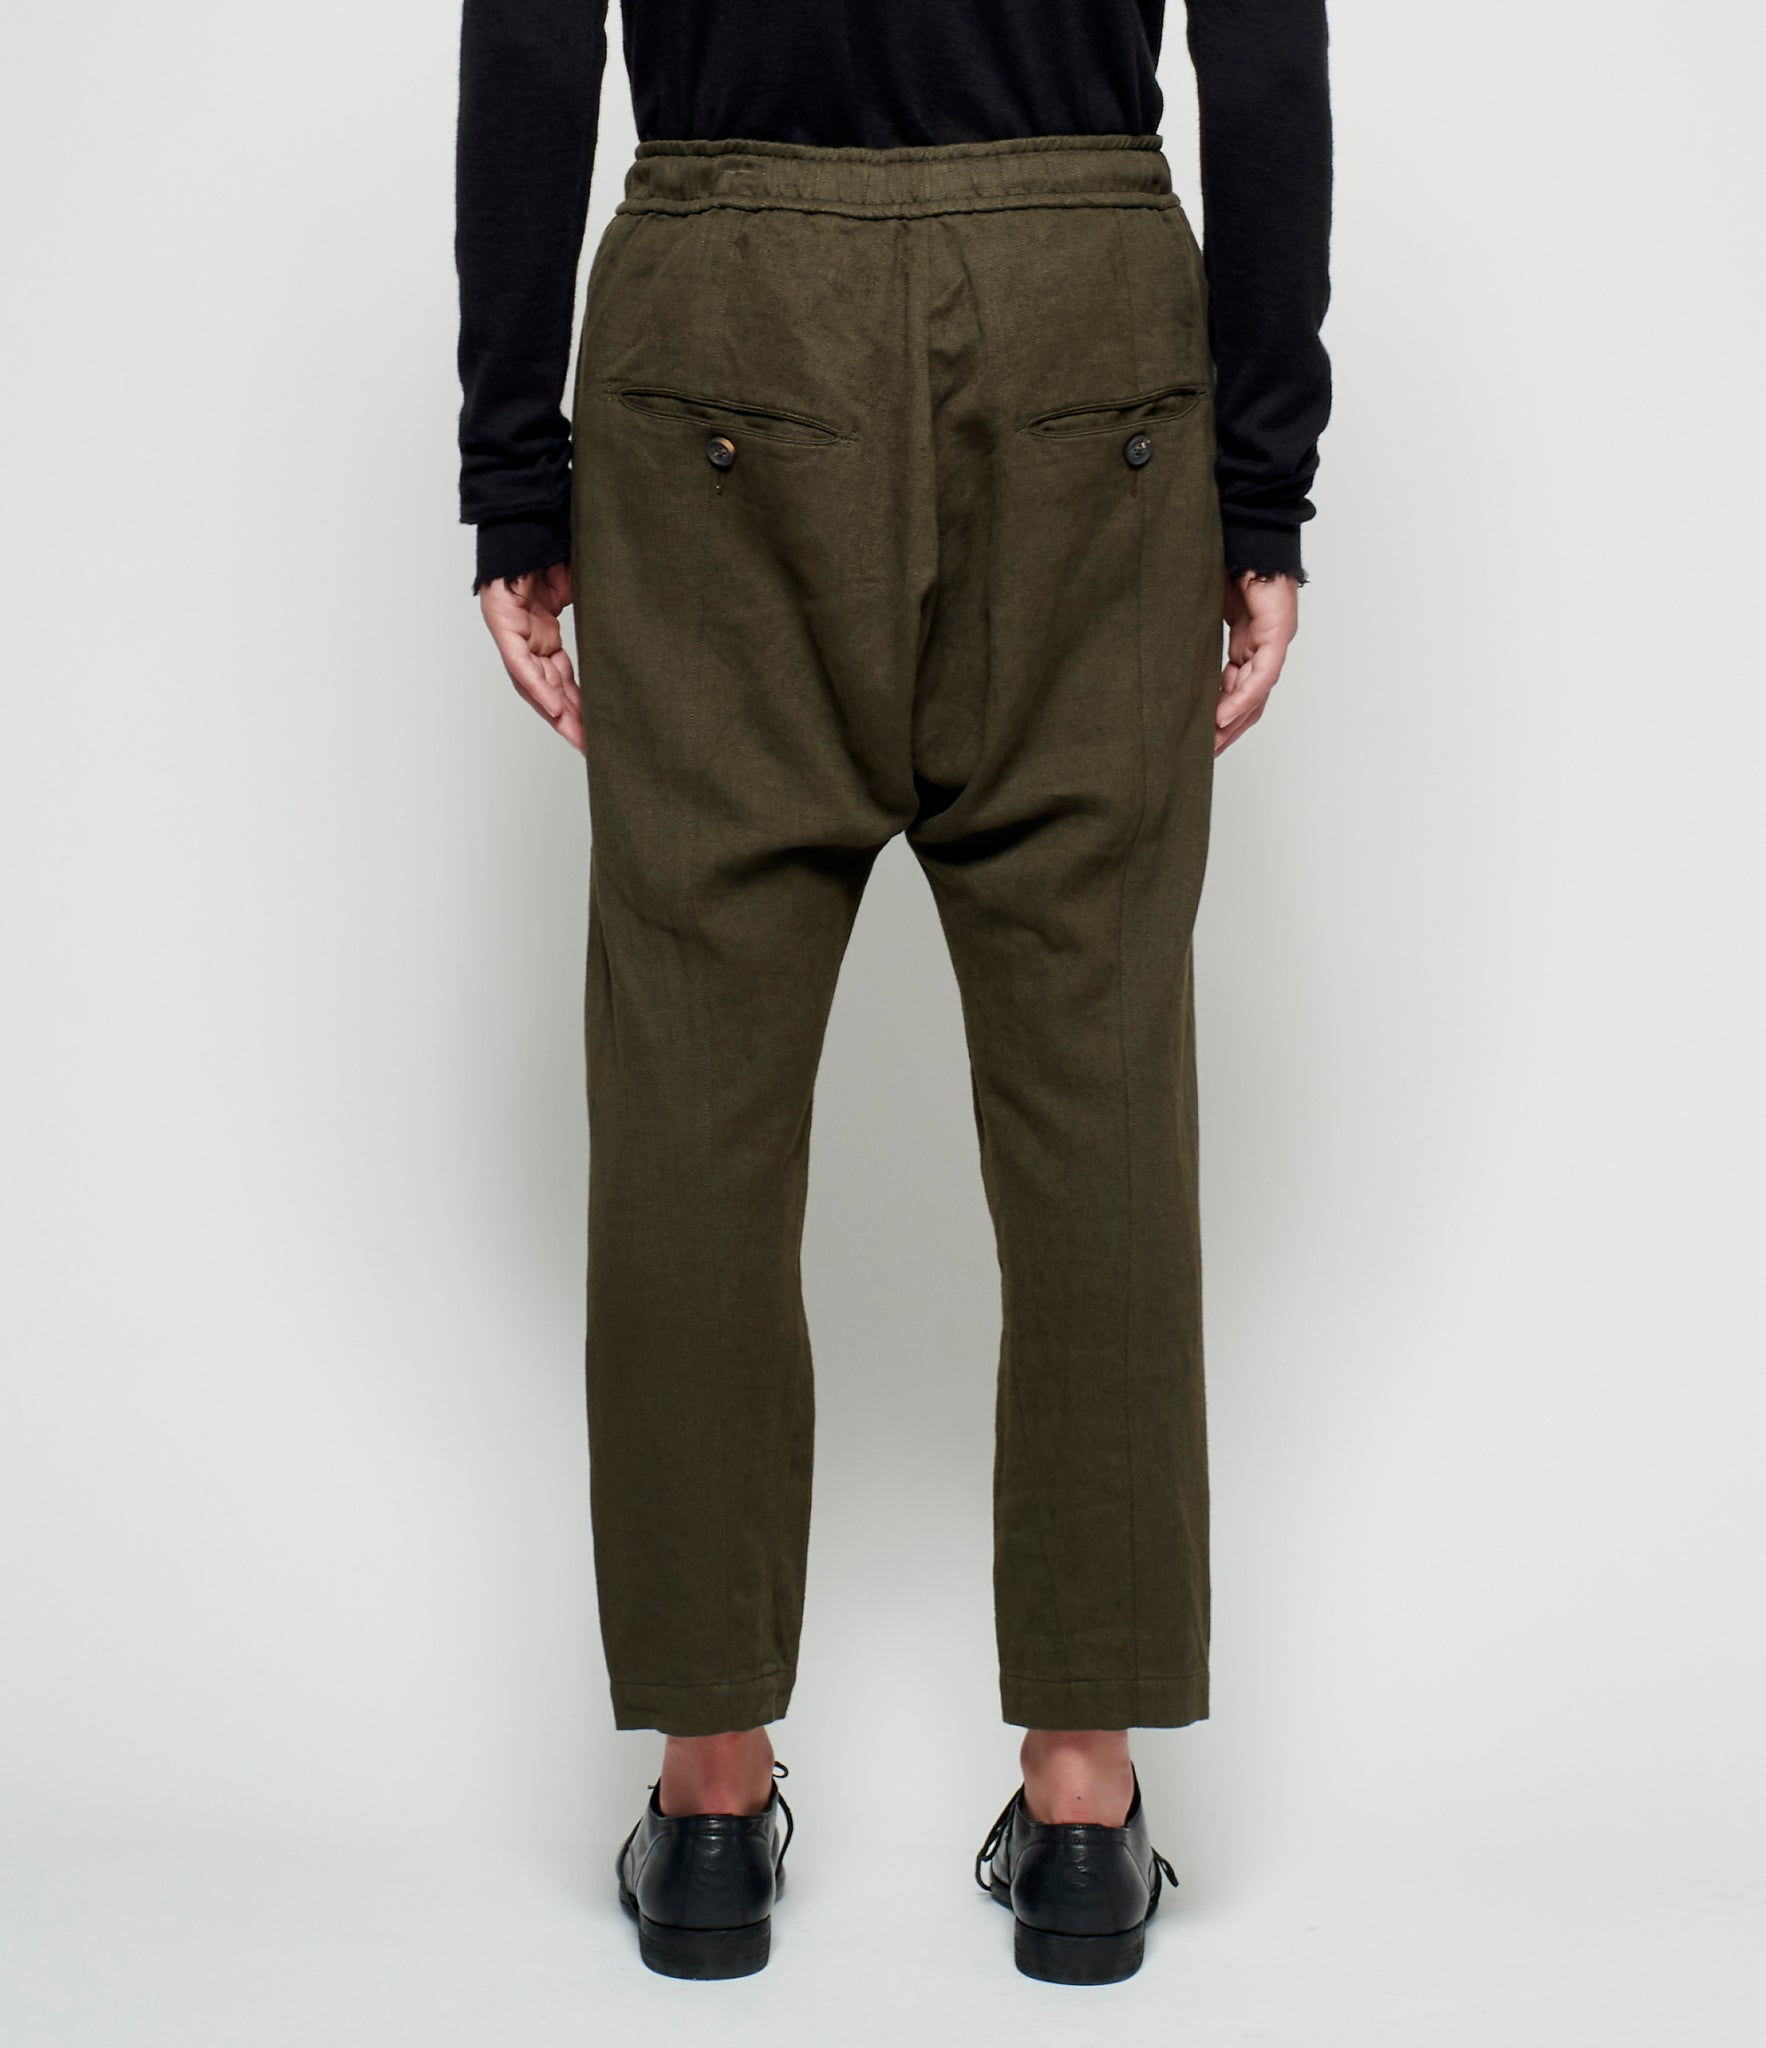 Ziggy Chen Olive Herringbone Twill Pants